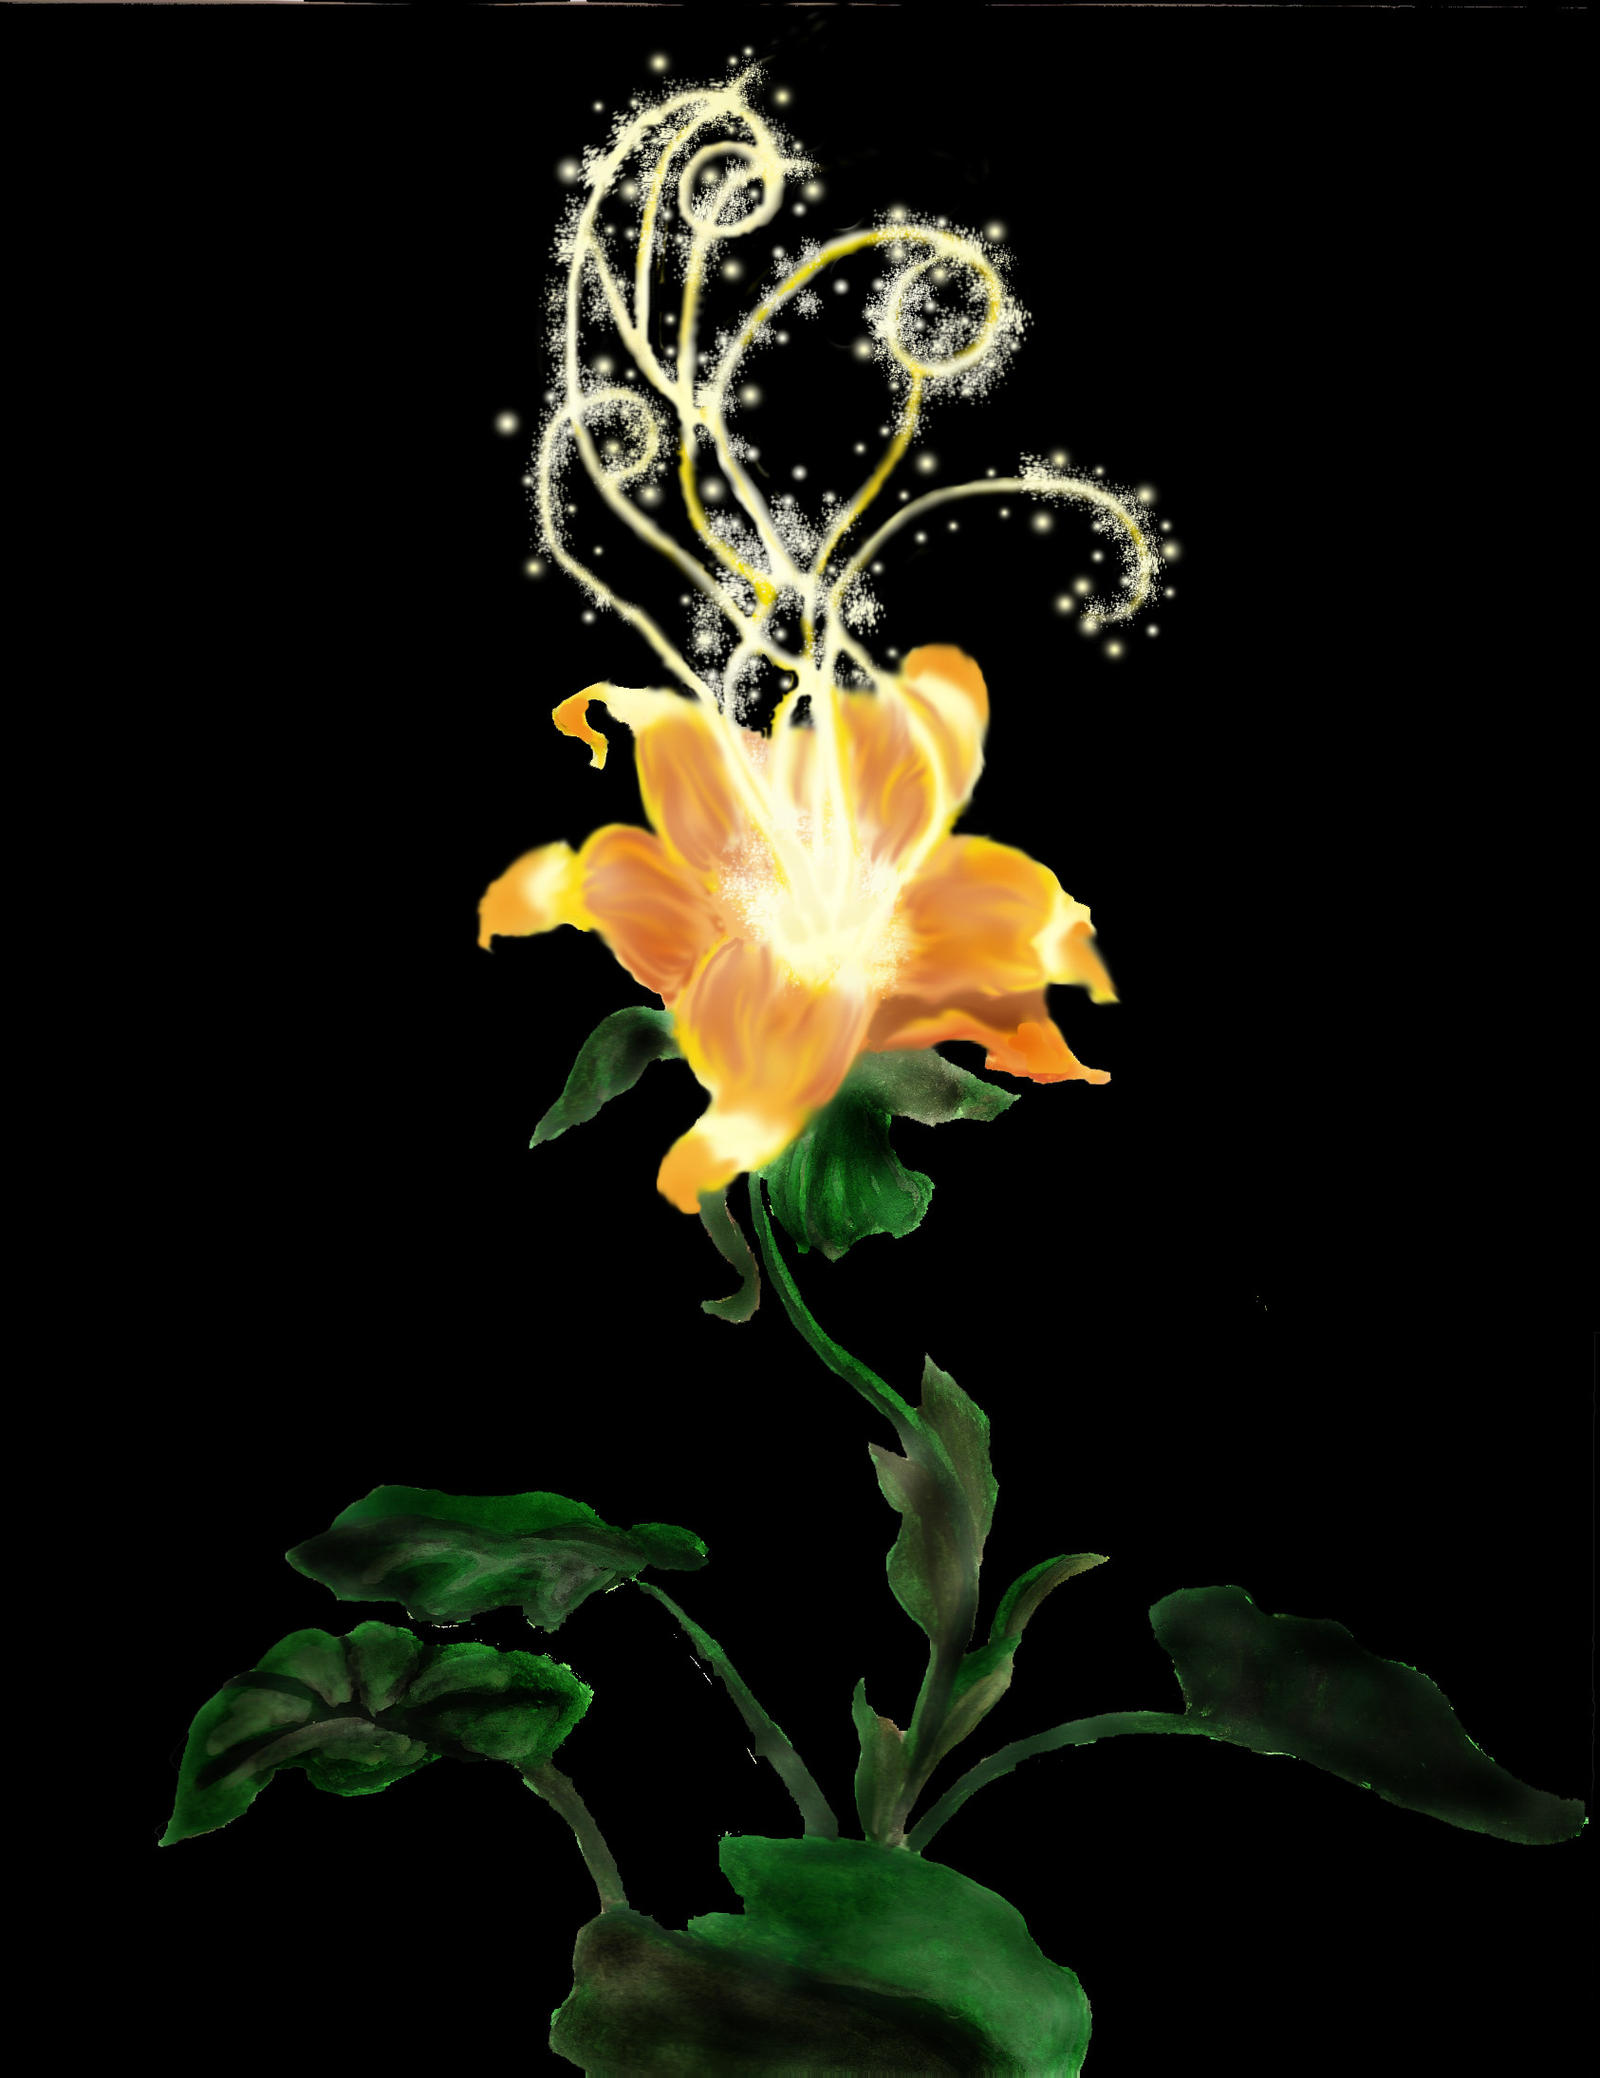 Tangled Magic Flower by TheAmazingElizabeth on DeviantArt